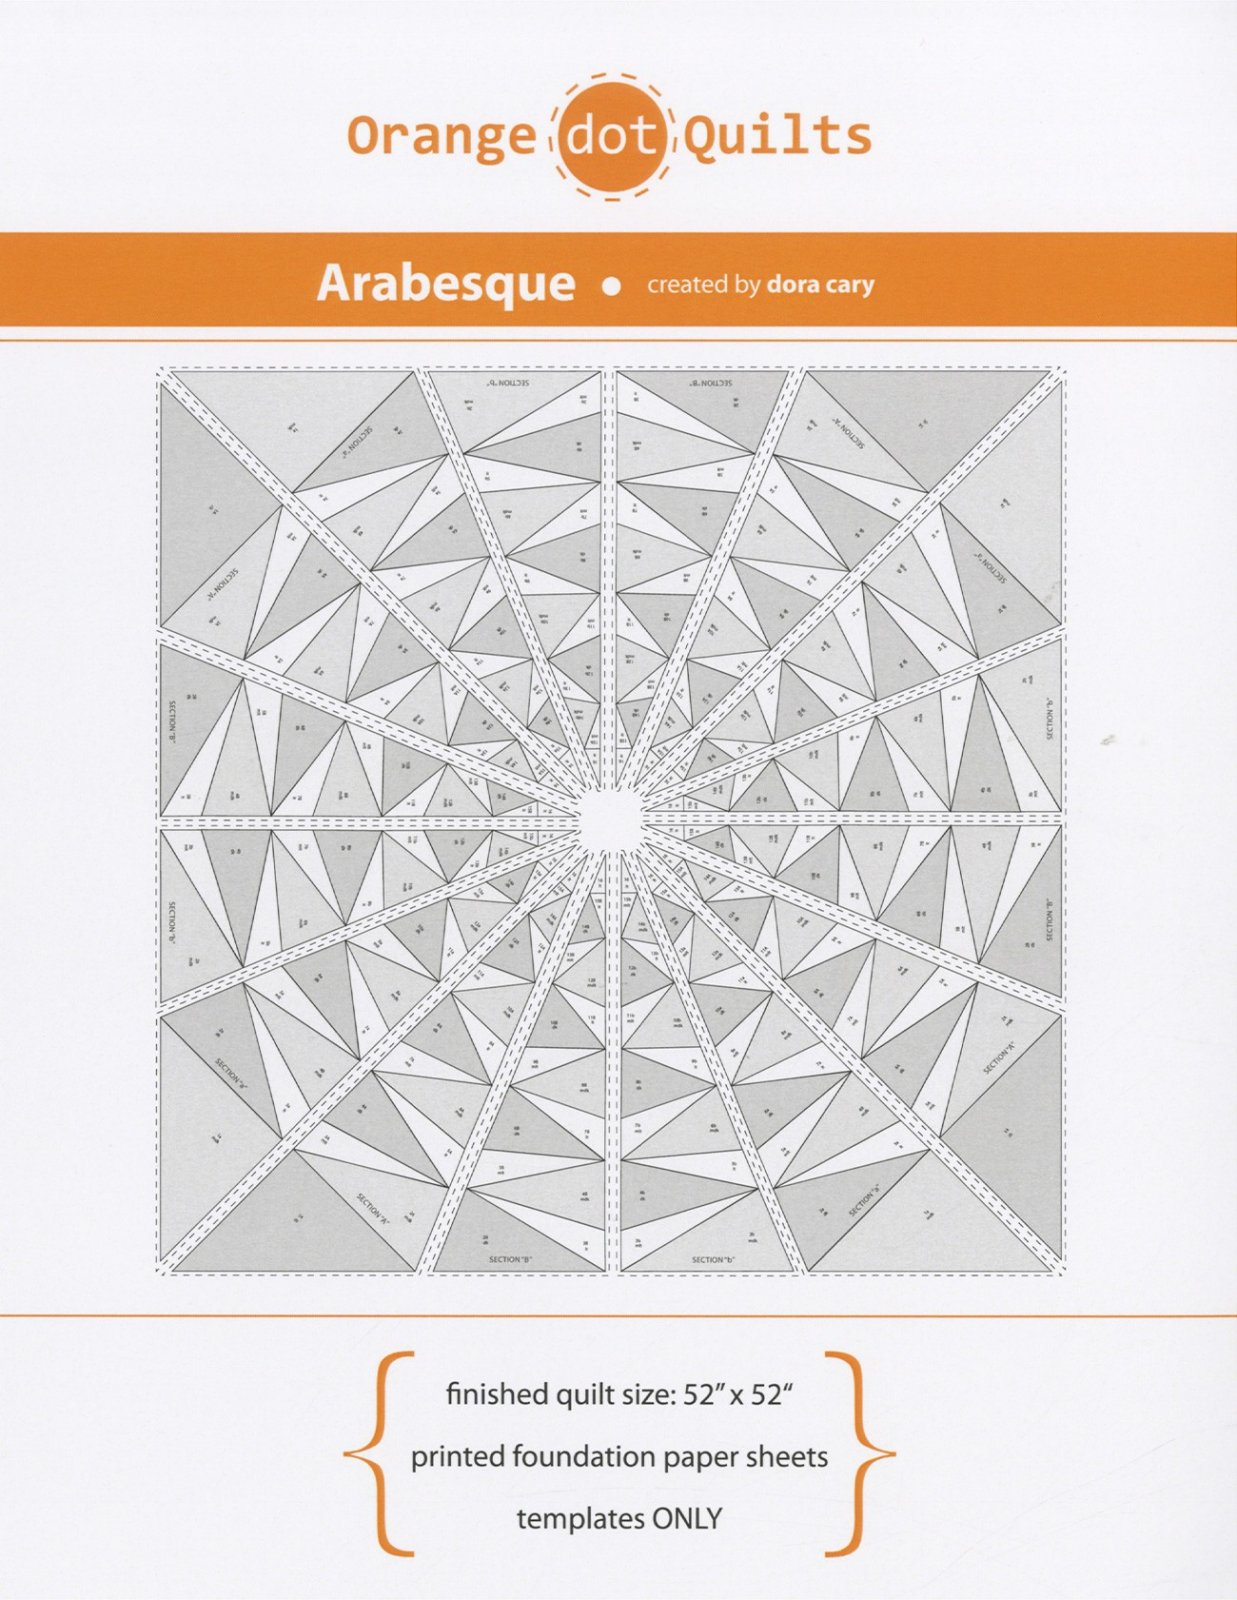 Arabesque FPP Template (only)